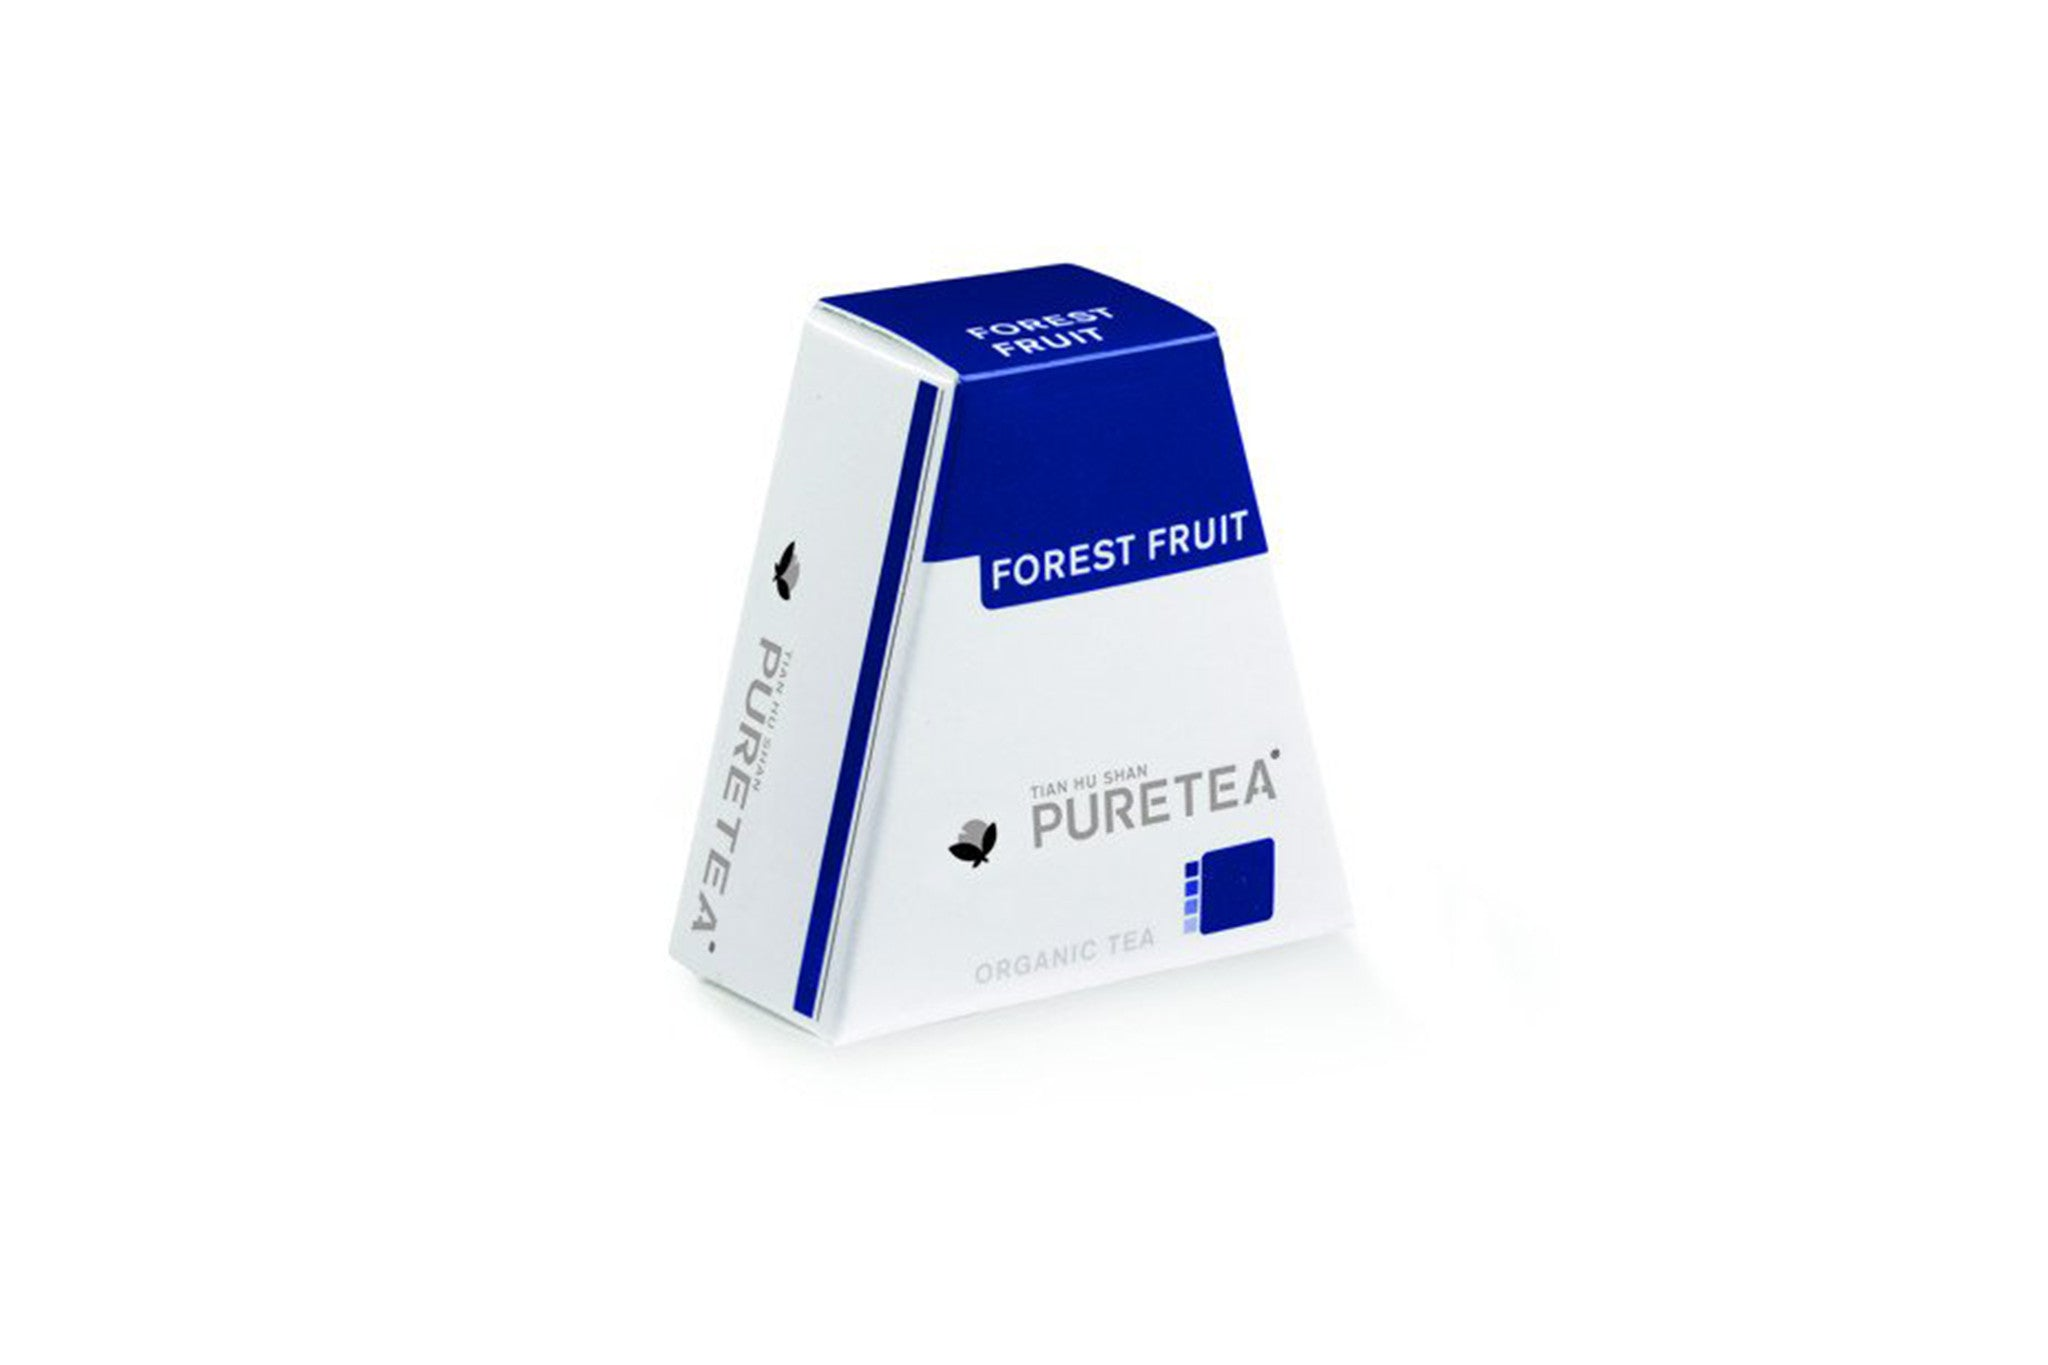 Pure Tea Forest Fruit - ROSS COFFEE & SPECIALTIES